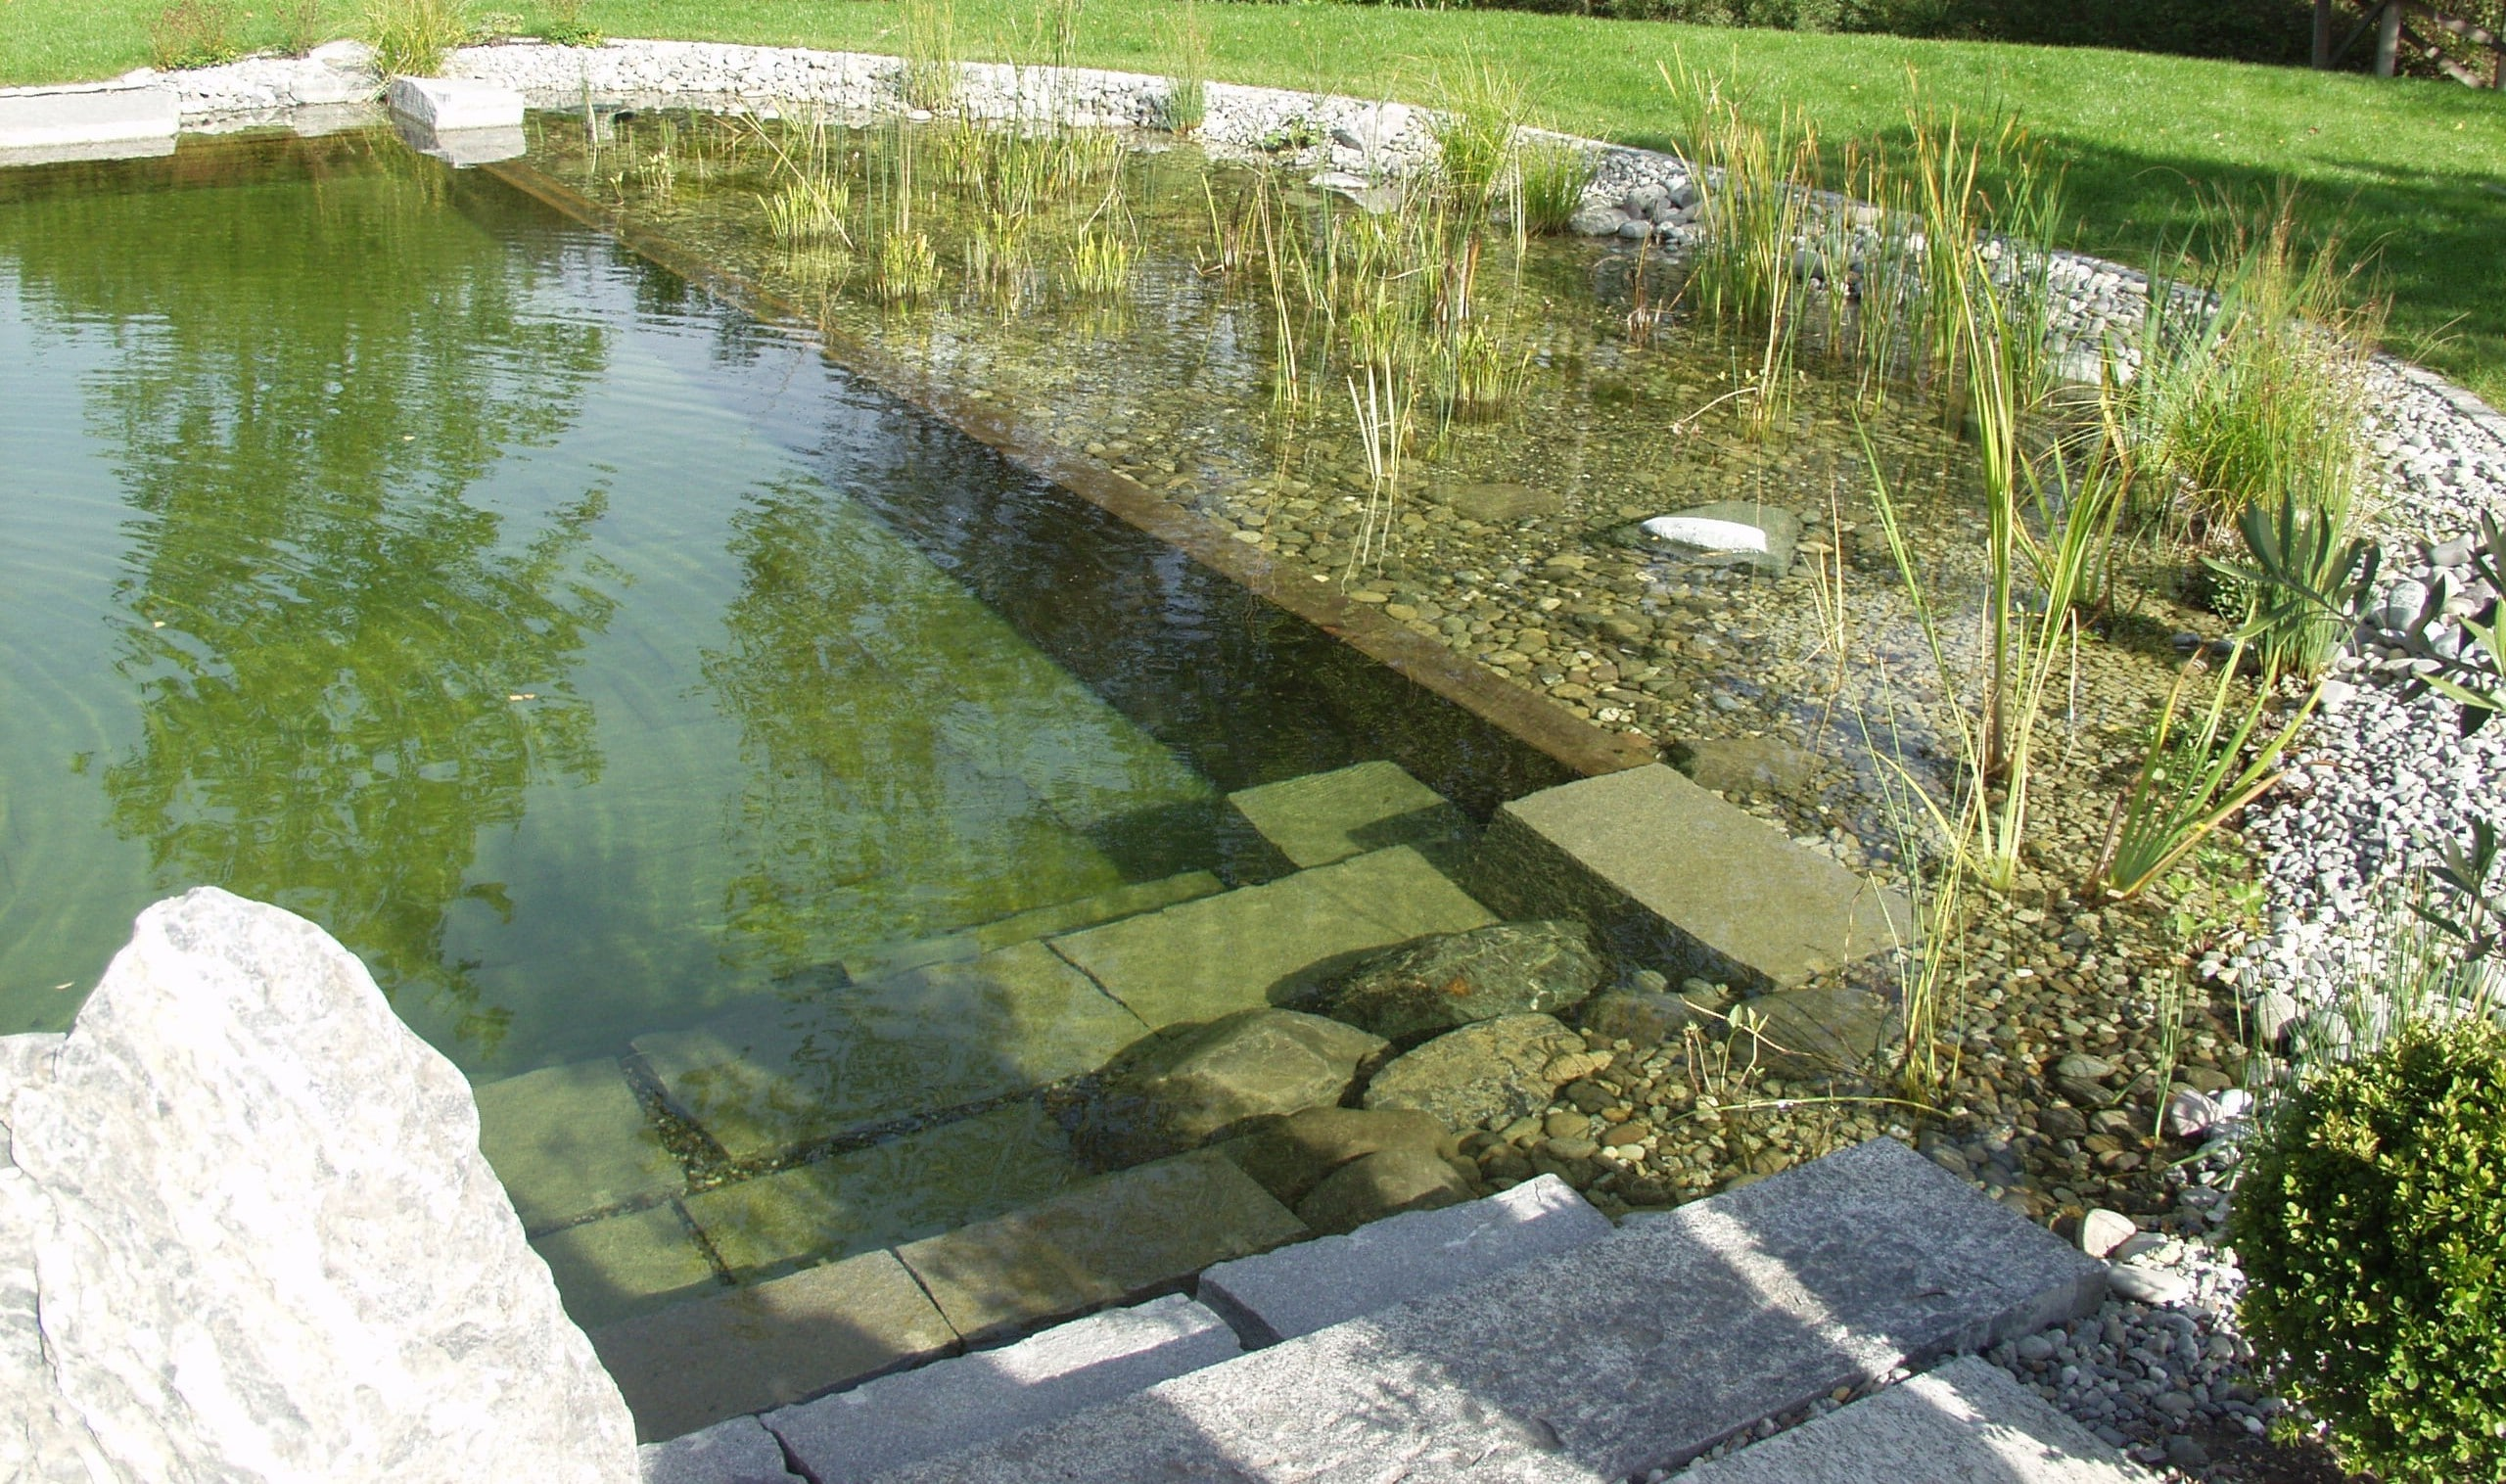 Como hacer una piscina natural en casa for Como construir una piscina natural ecologica